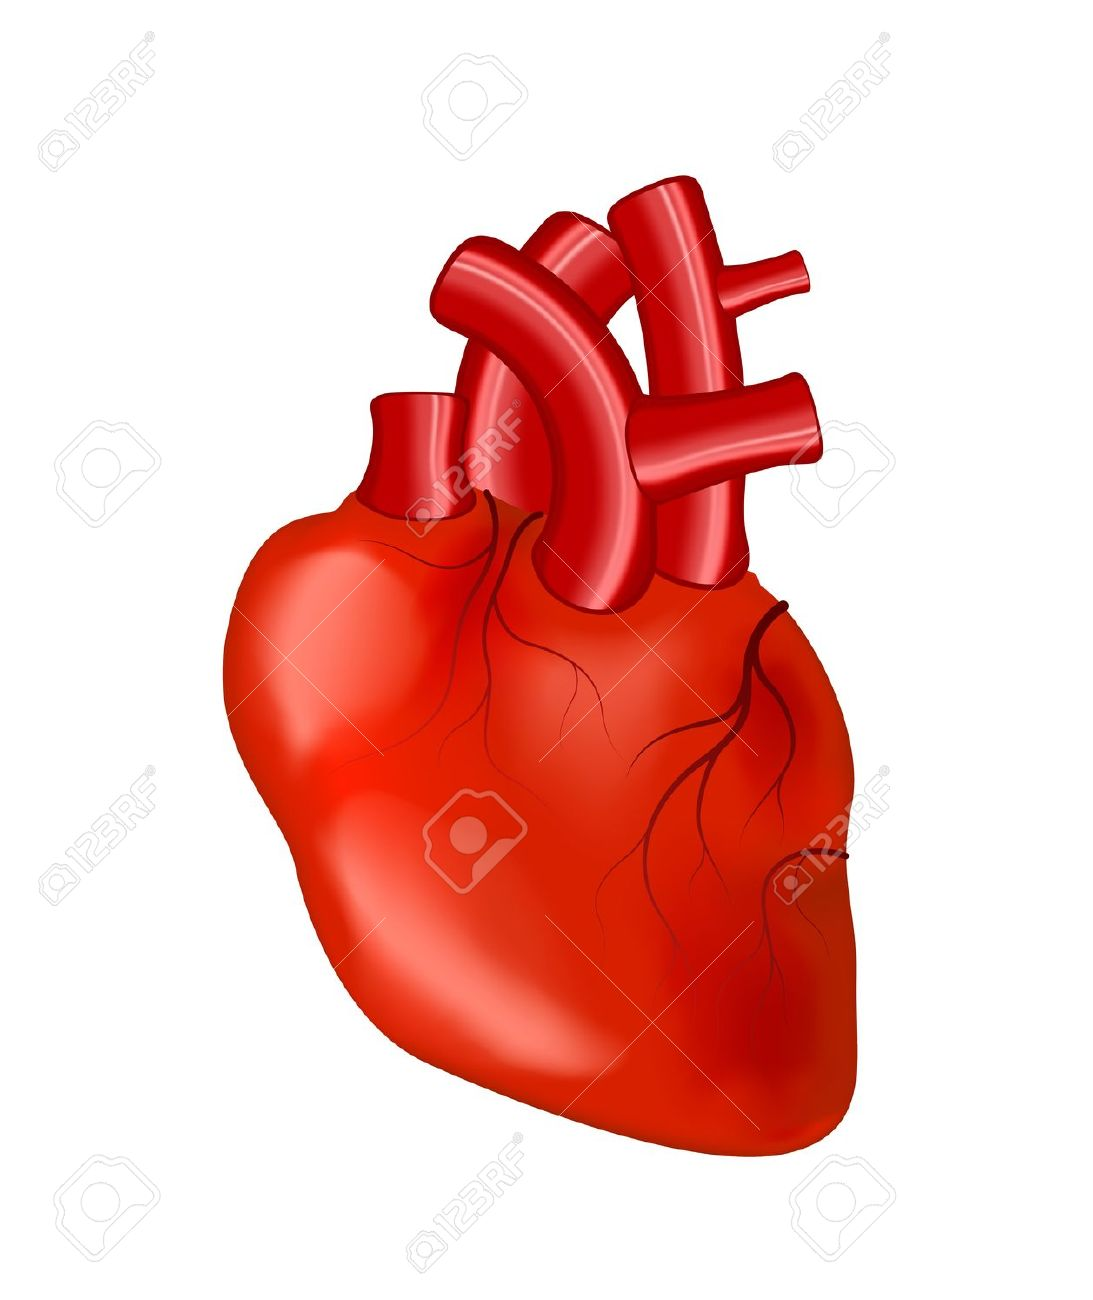 Heart human. Best real clipart clipartion